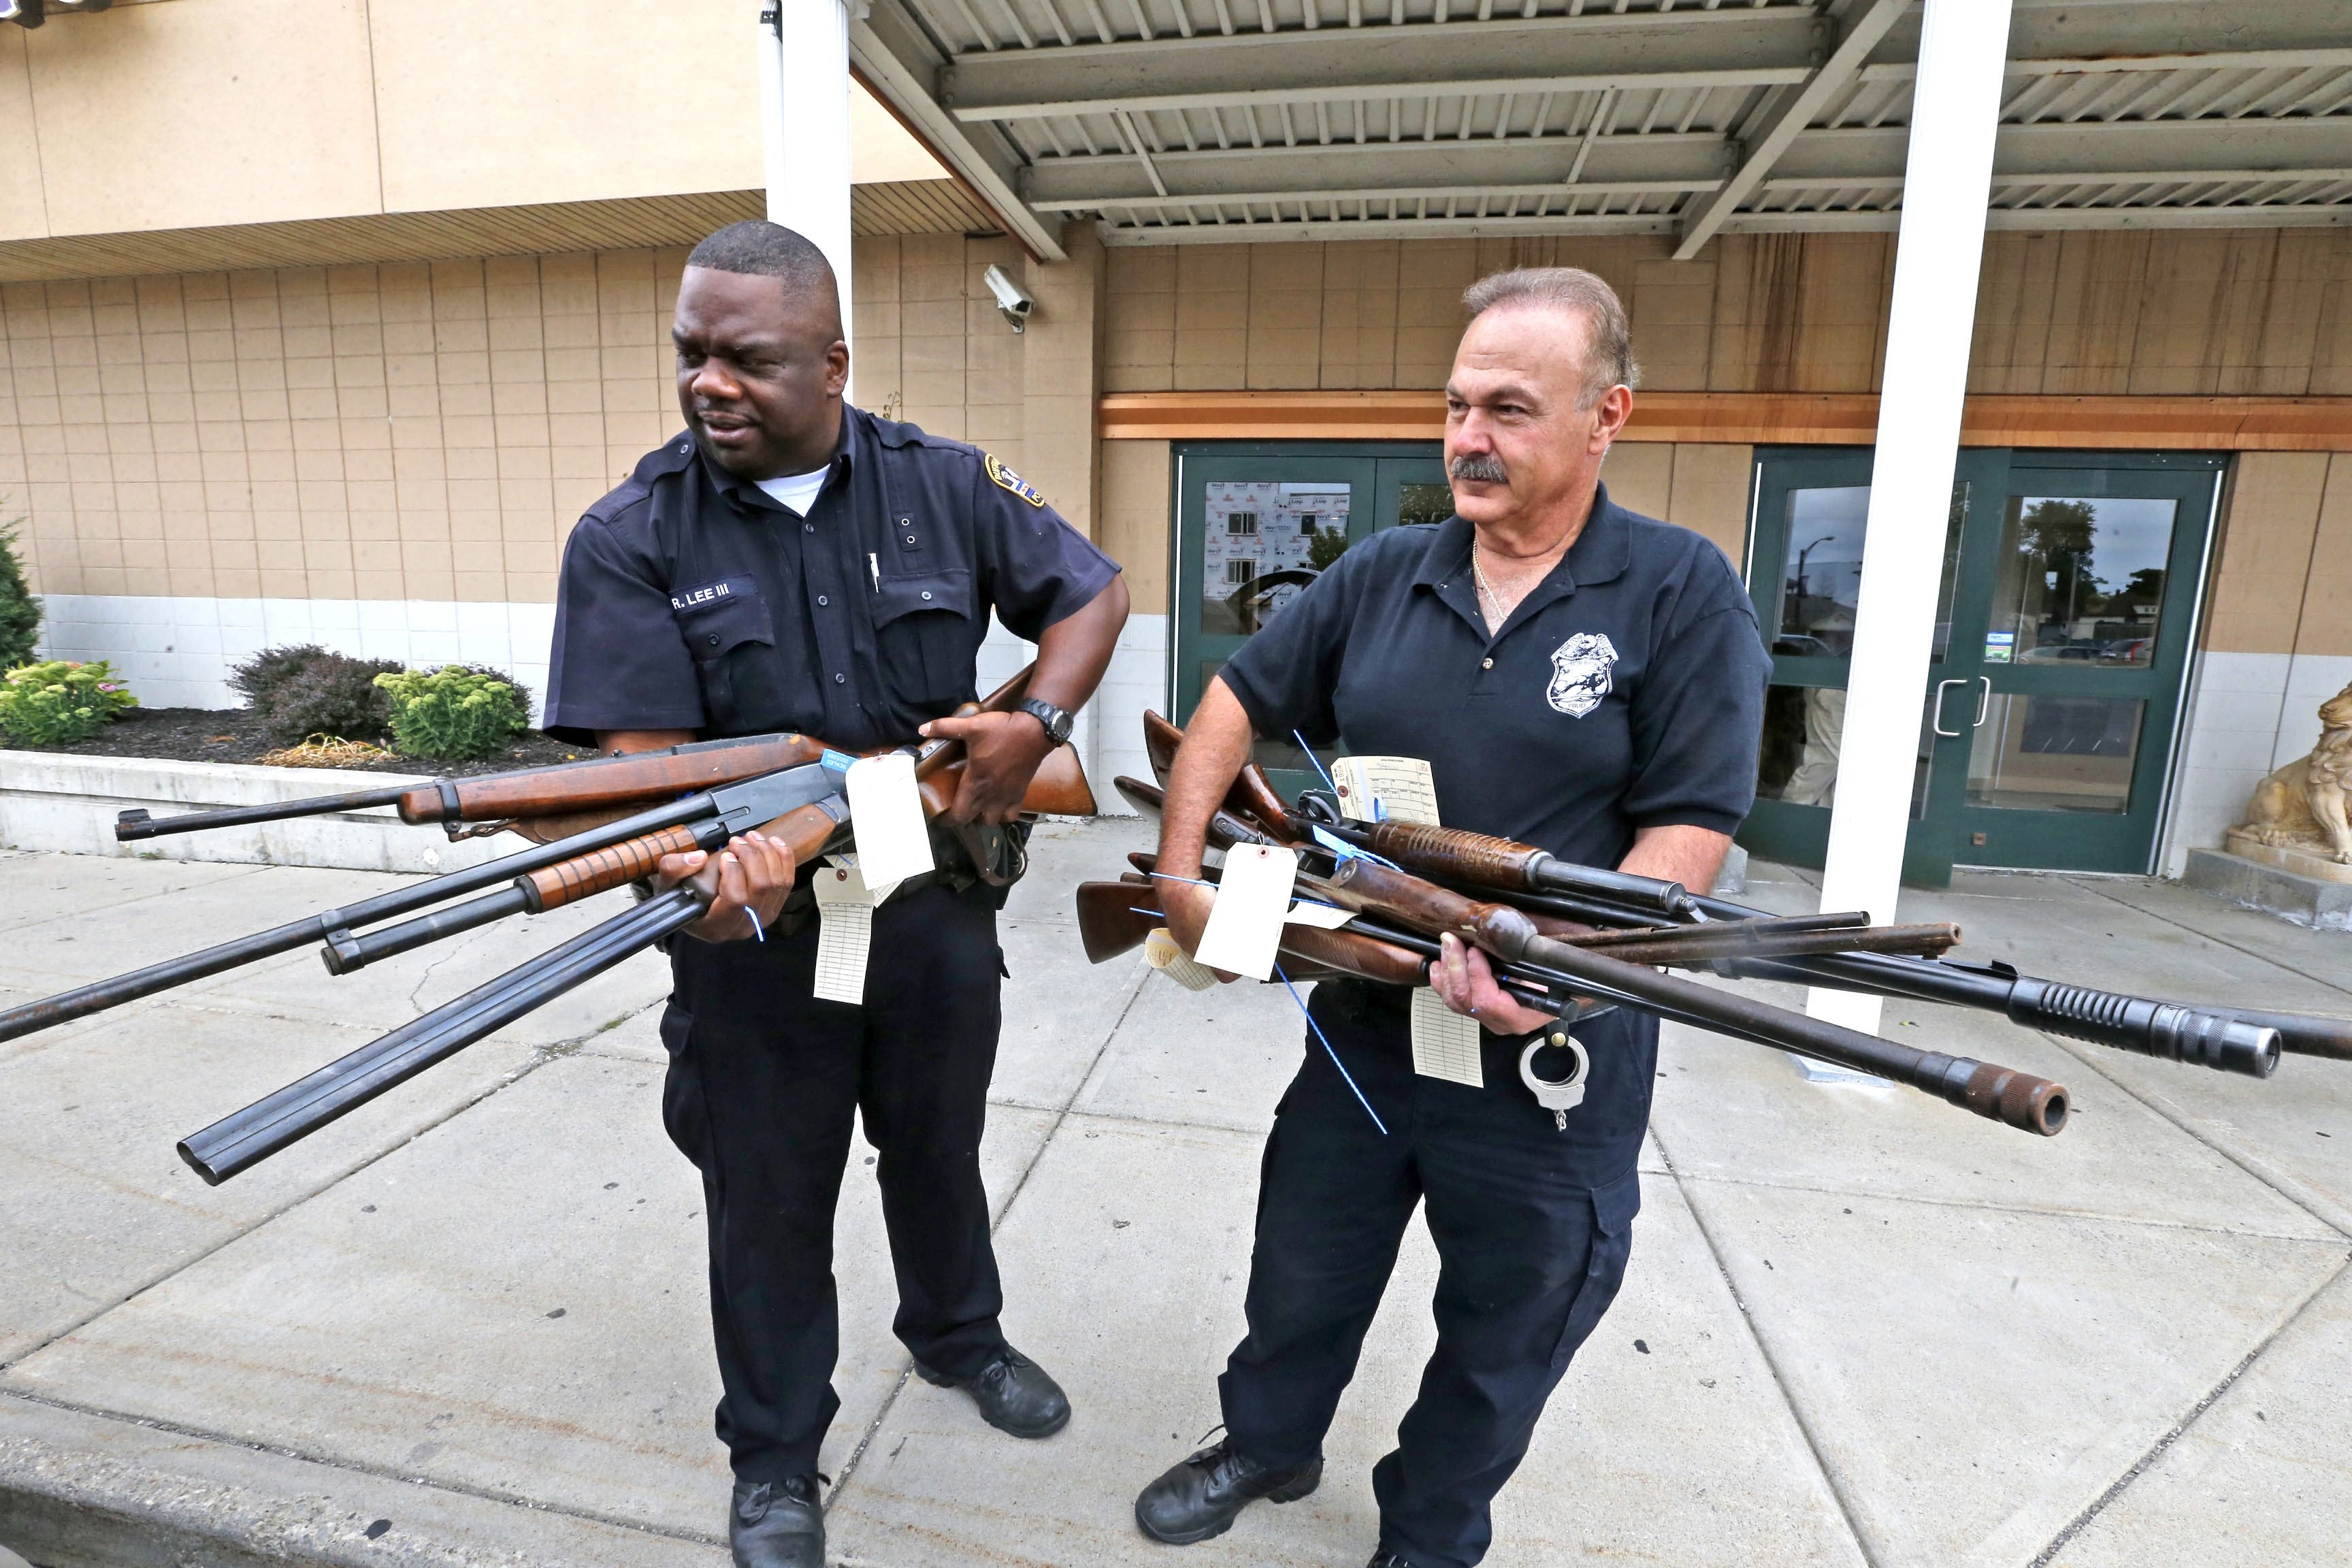 Buffalo Police Officer Robert Lee III , left, and Lt. Steve Nichols, carry rifles and shotguns that were turned in during Buffalo's gun buyback program at True Bethel Baptist Church on East Ferry Street on Aug. 16. This location took in 100 guns by noon. (Robert Kirkham/Buffalo News)